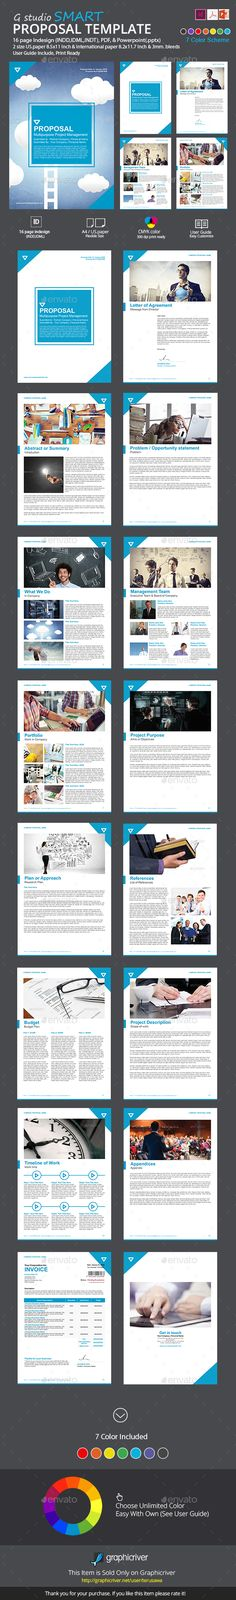 Company Proposal Template Proposal templates, Branding design - company proposal template